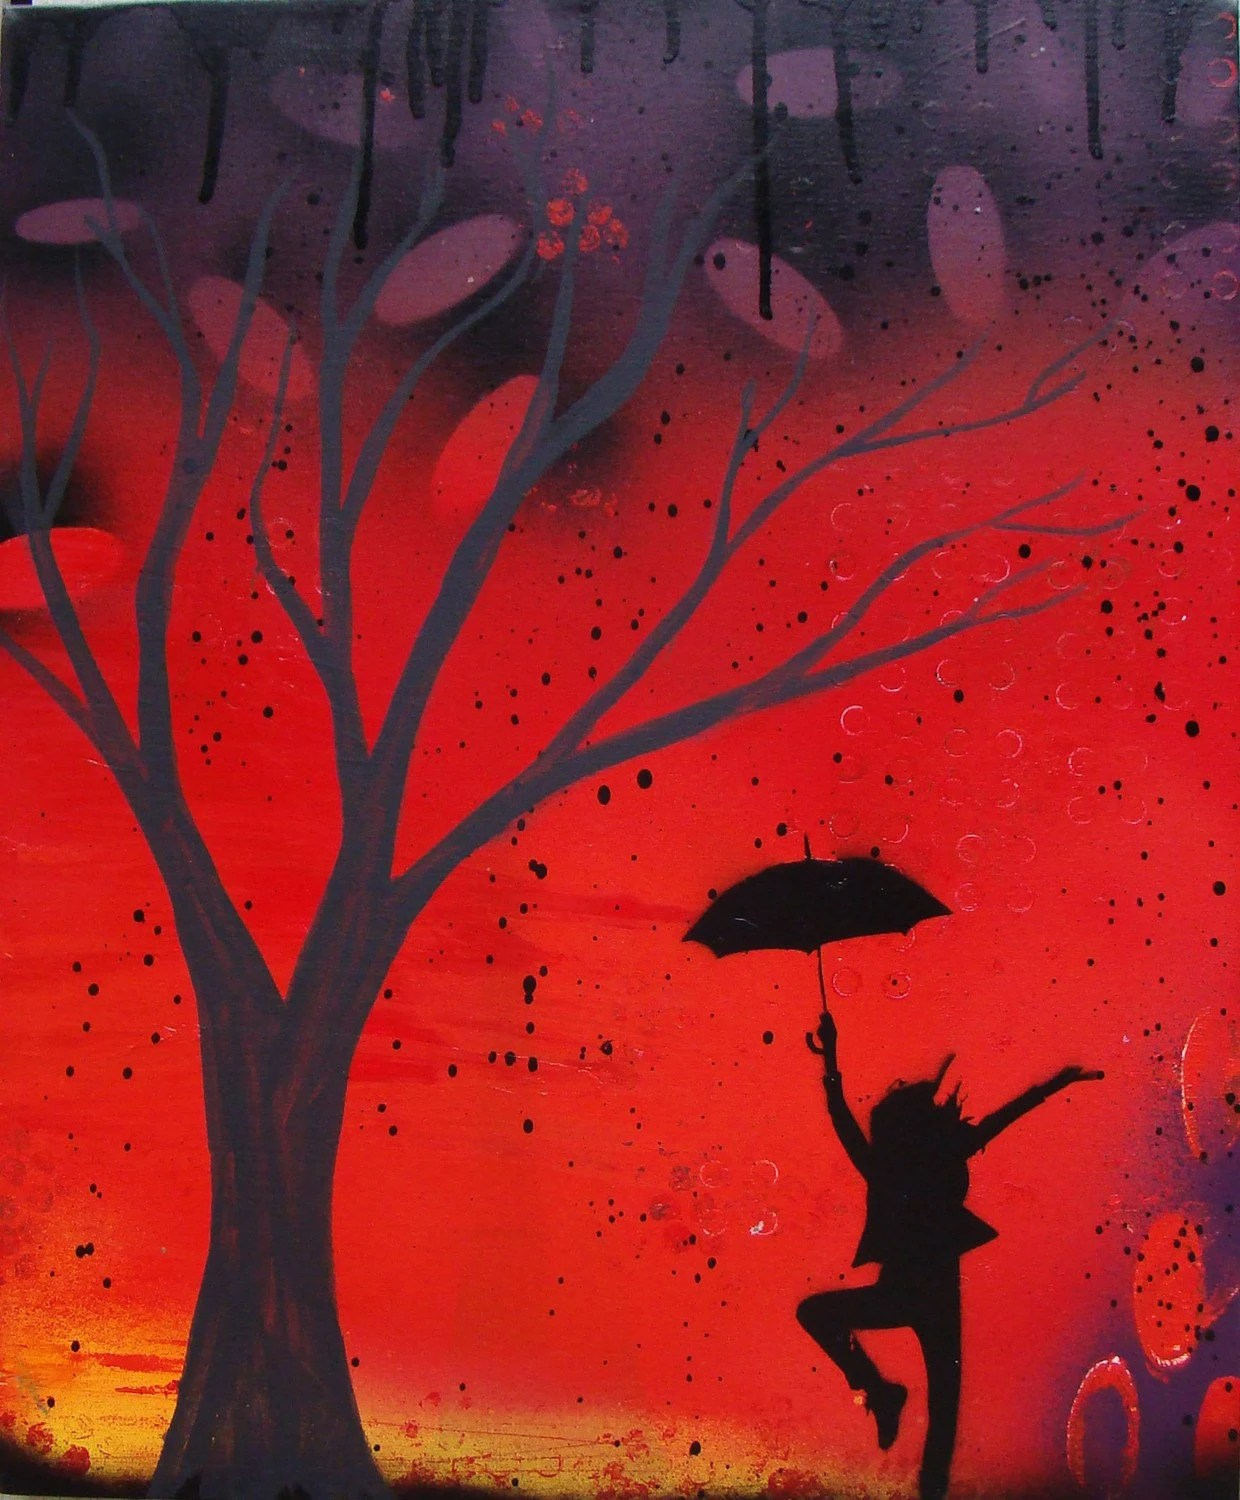 Abstract Painting Of Girl Dancing Modern Abstract Tree Painting Silhouette Dancing In The Rain